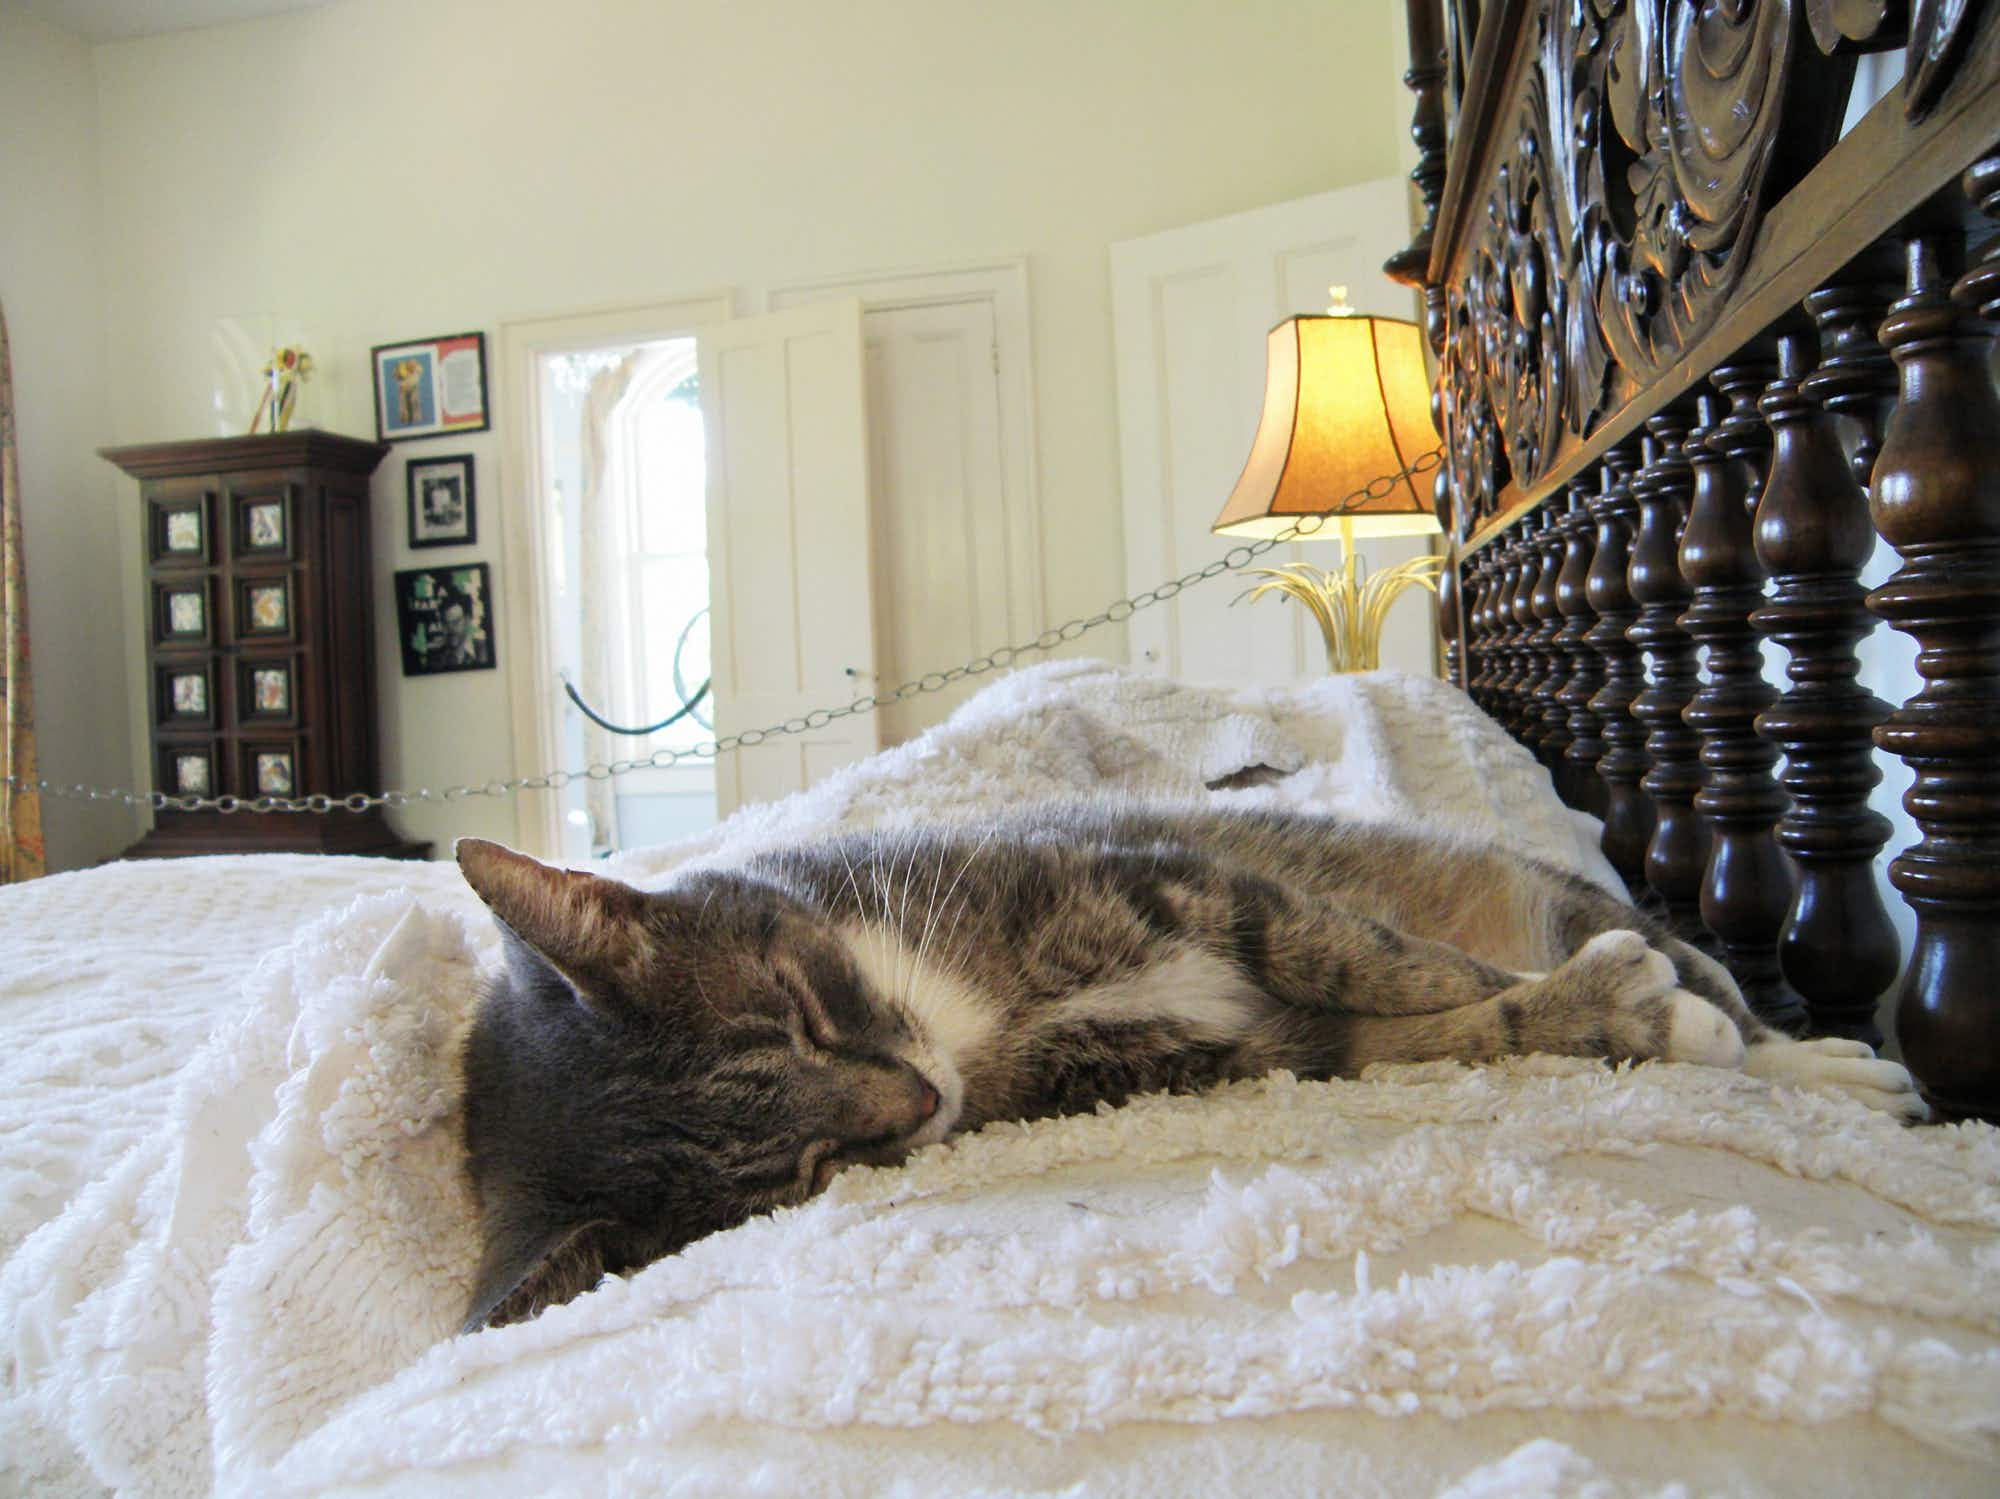 Hemingway's historic house and 54 cats survive Hurricane Irma in the Florida Keys